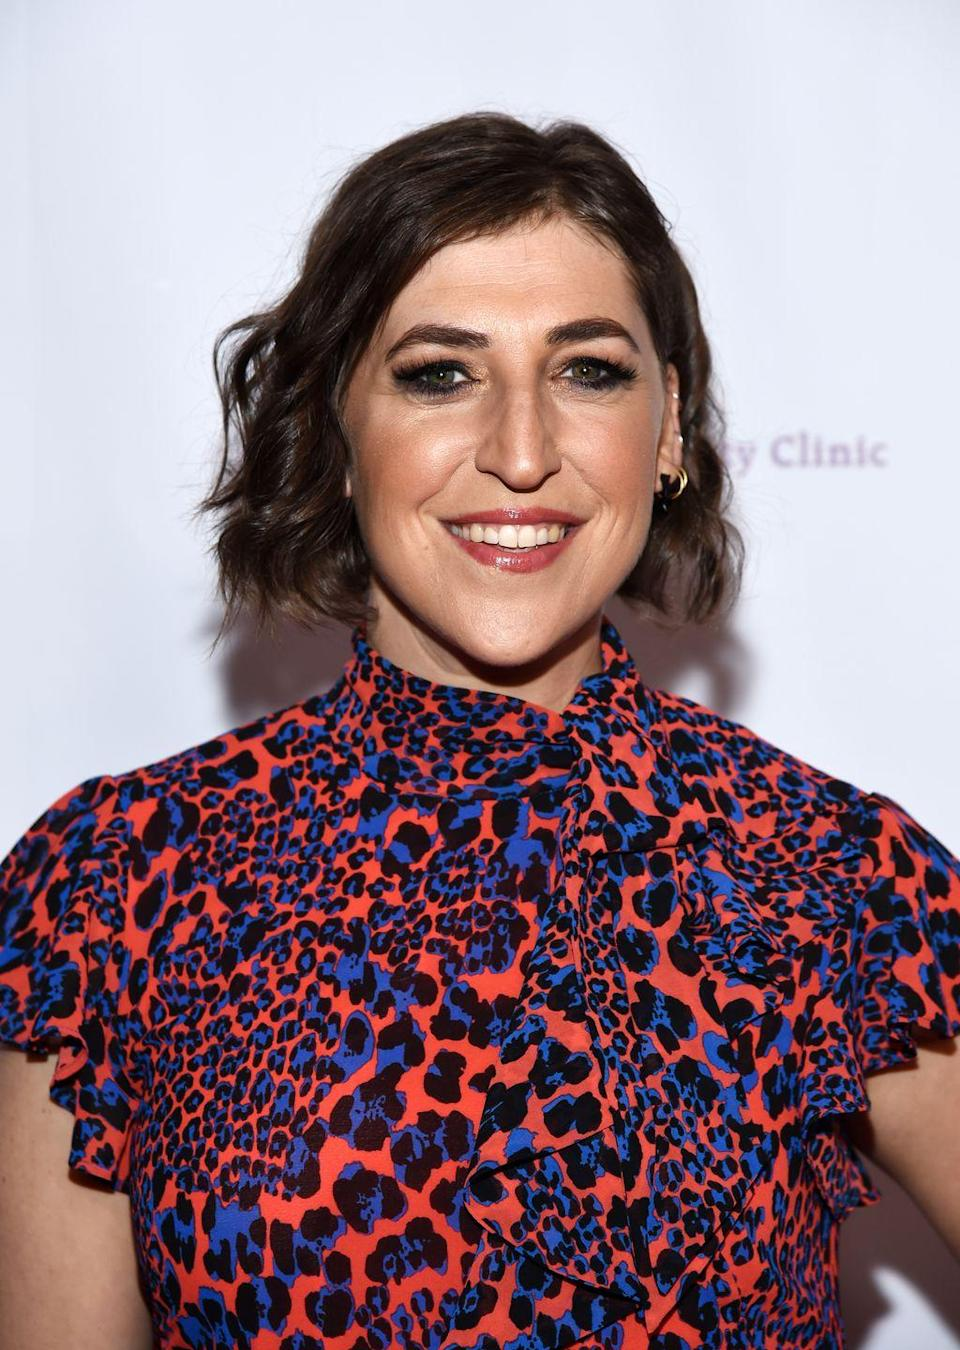 <p><em>Big Bang Theory</em> fans may know her best as Amy Farrah Fowler, but sometime this year, <em>Jeopardy</em>! fans will welcome her as the temporary host of the trivia show. Meanwhile, the actress will continue to star in her new Fox sitcom, <em>Call Me Kat</em>.</p>